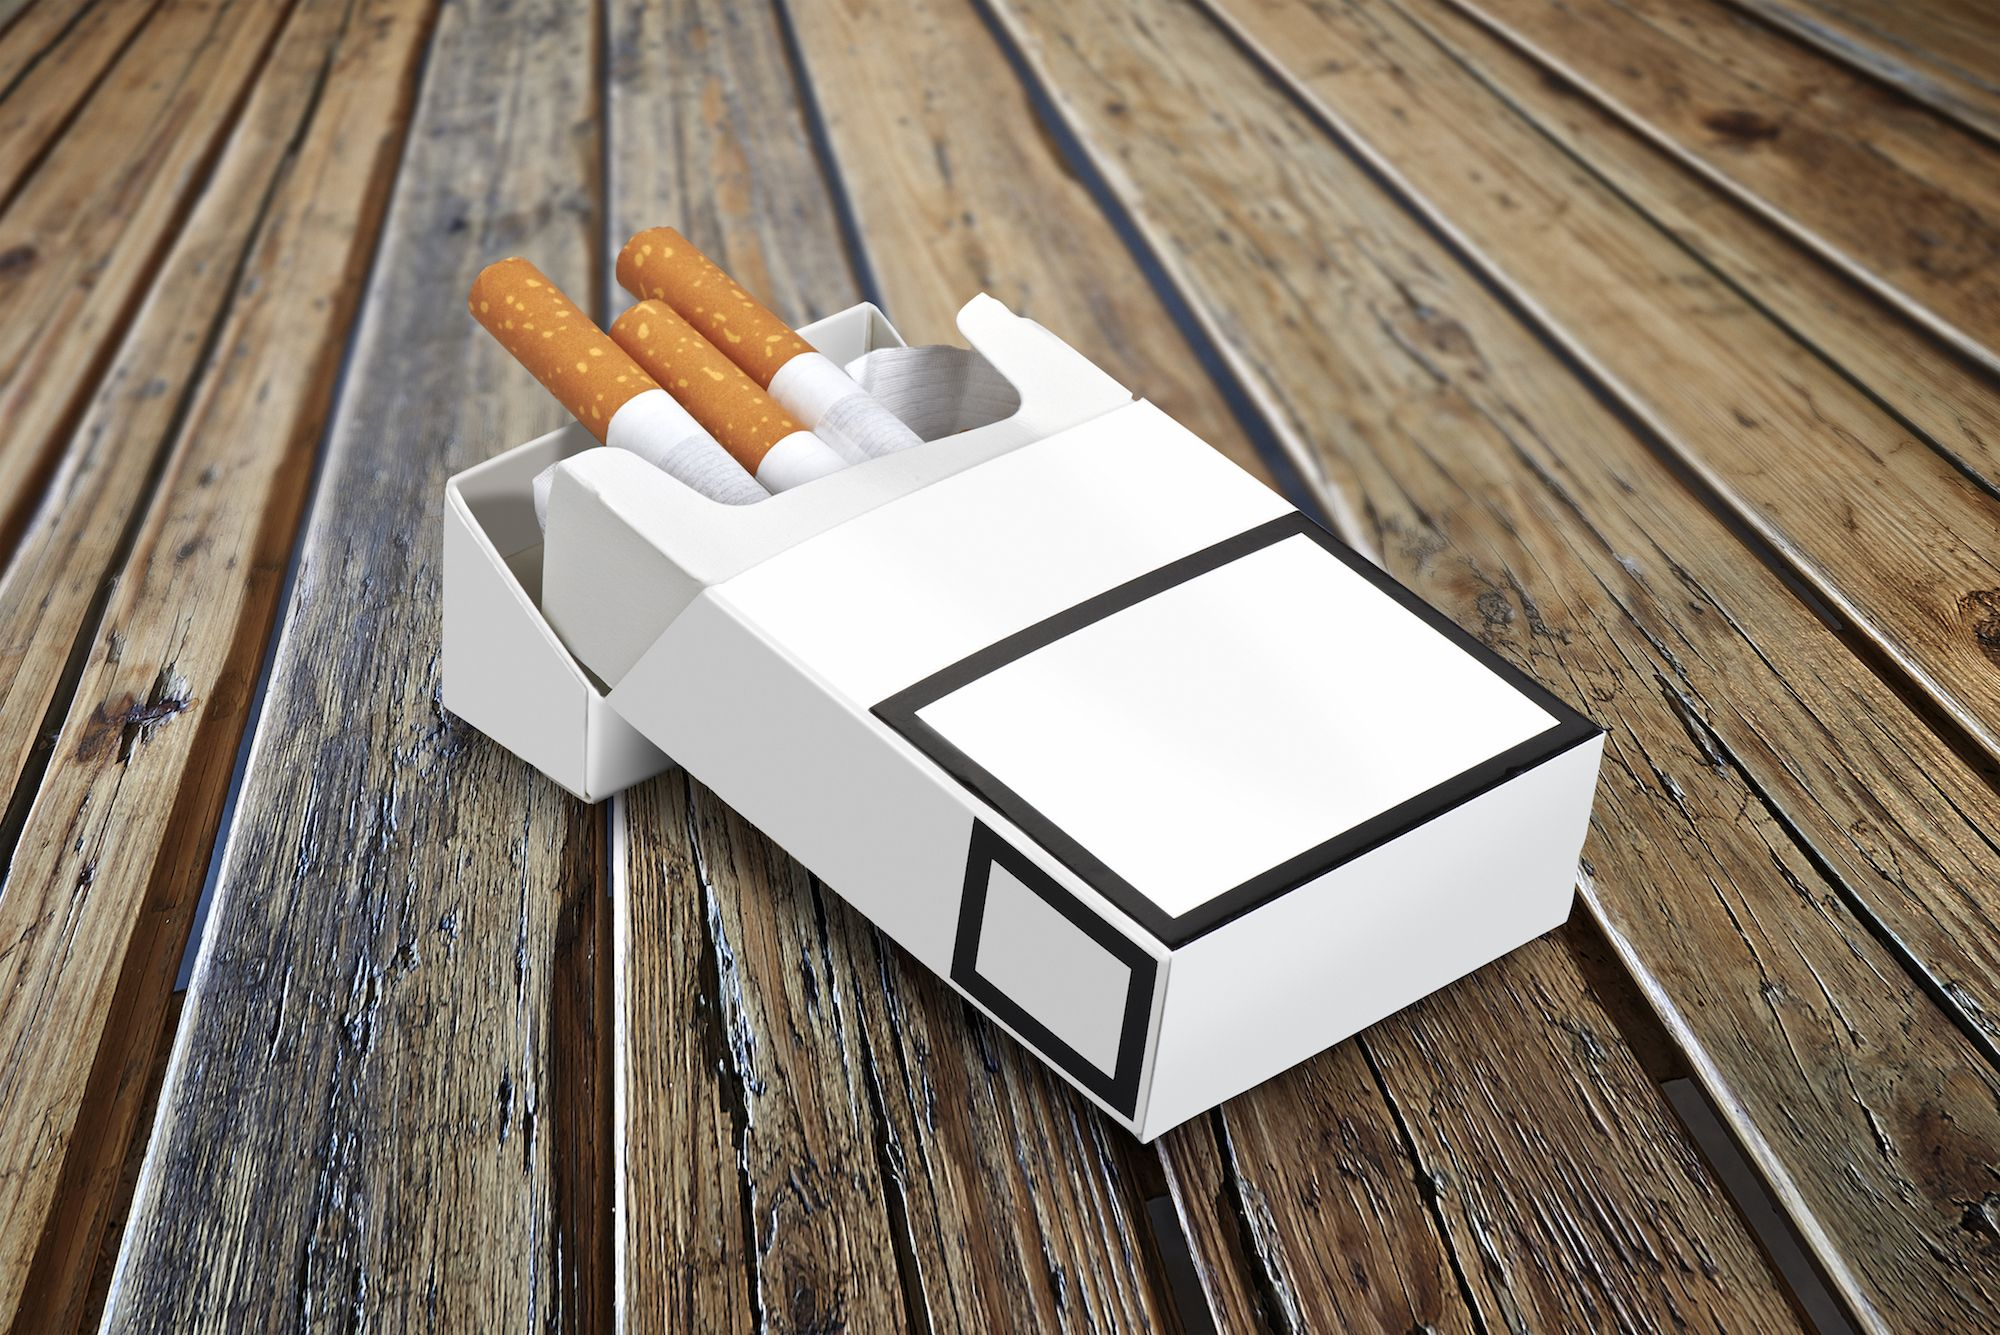 The age at which you can buy cigarettes could be raised